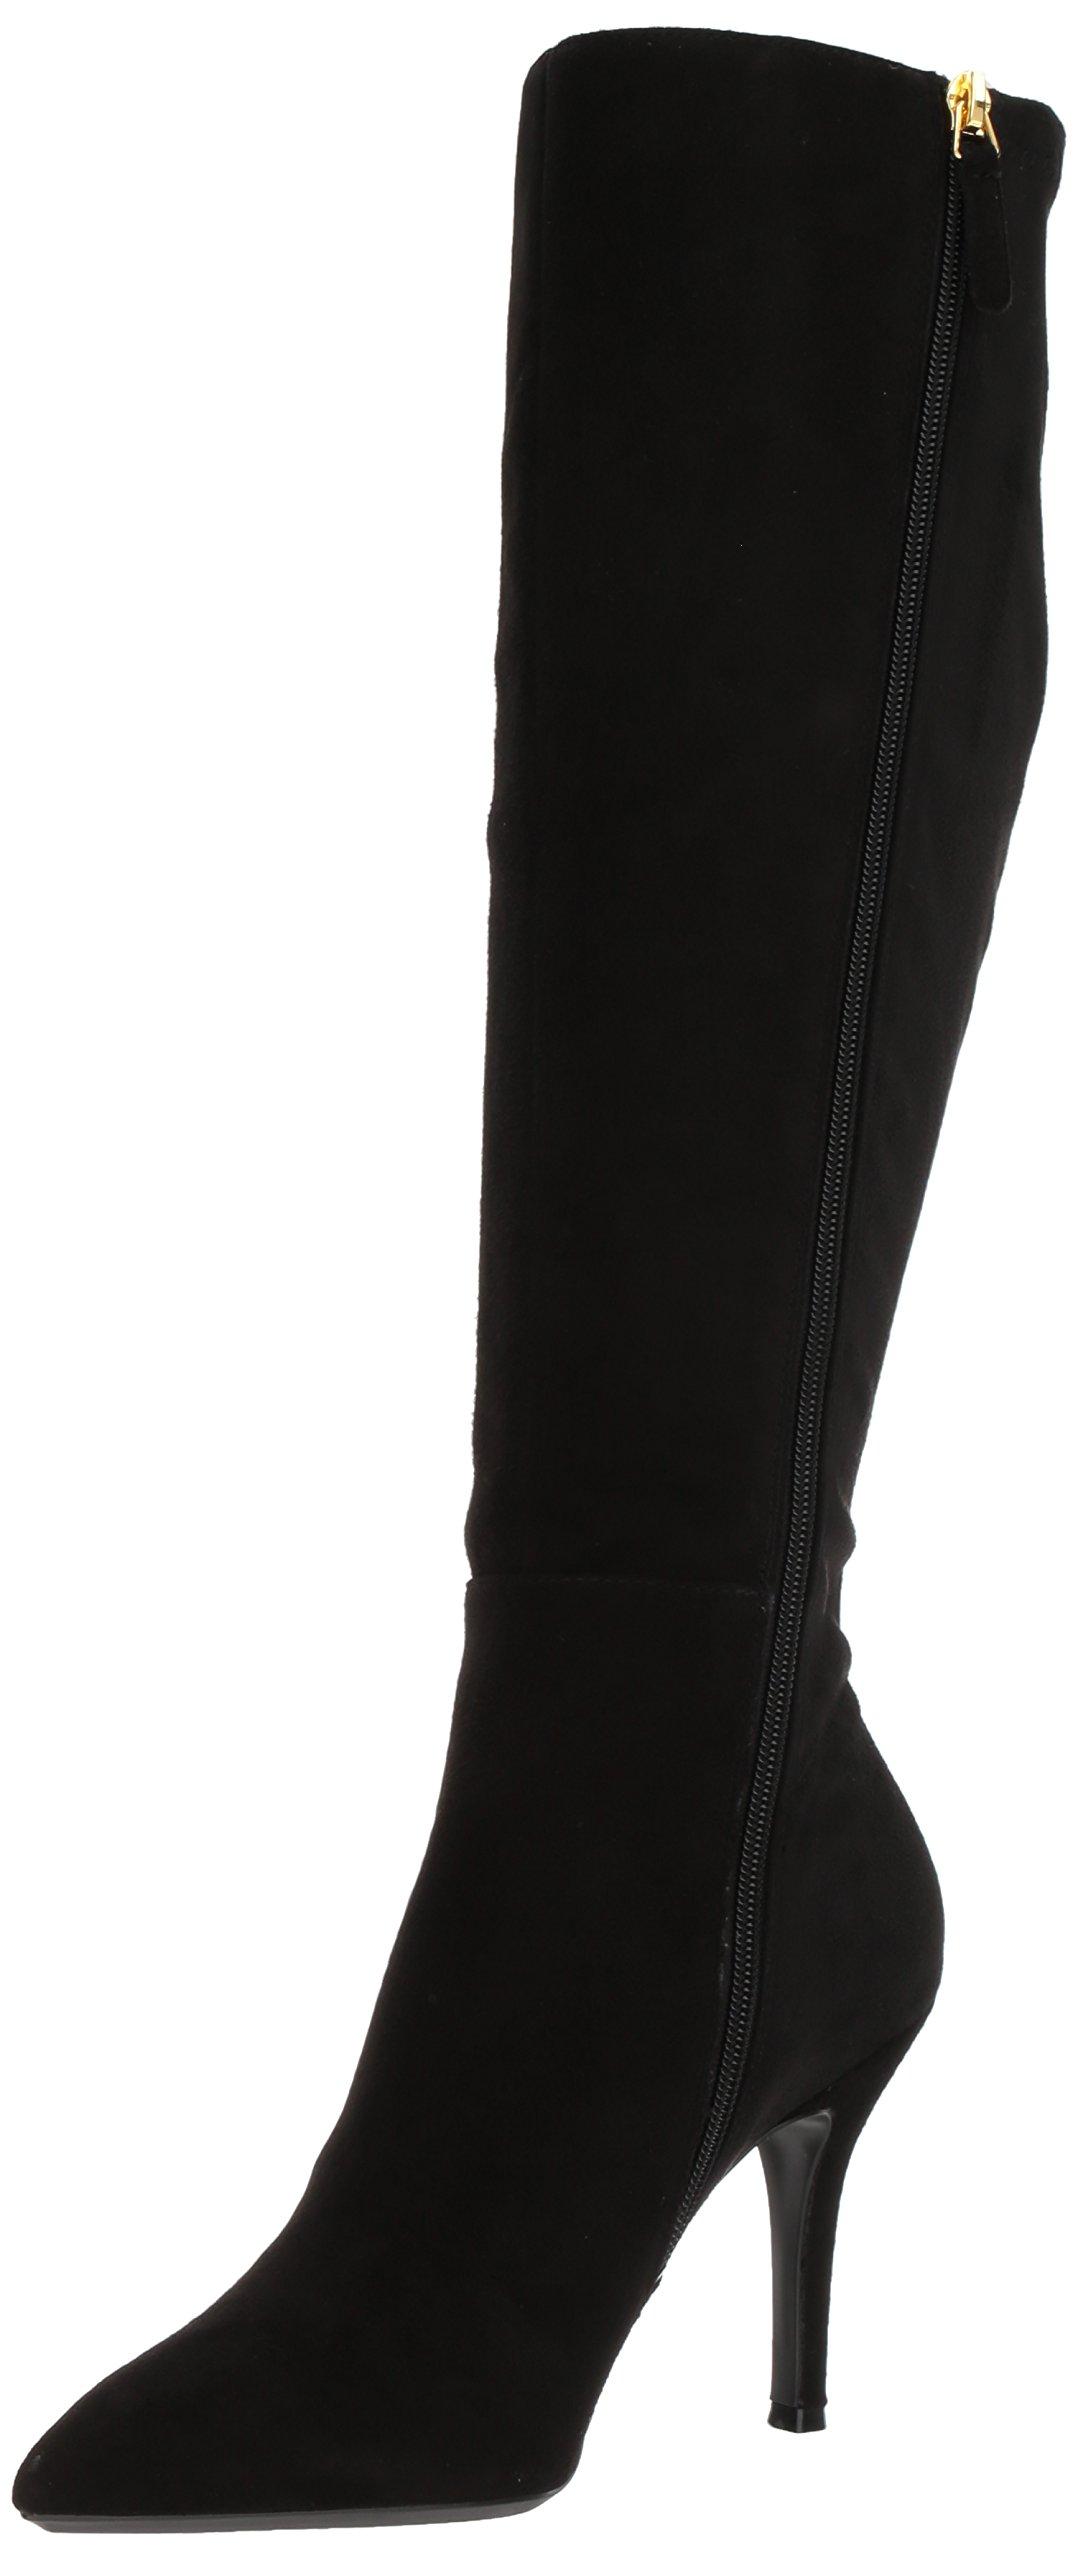 Nine West Women's Fallon, Black Suede, 6.5 Medium US